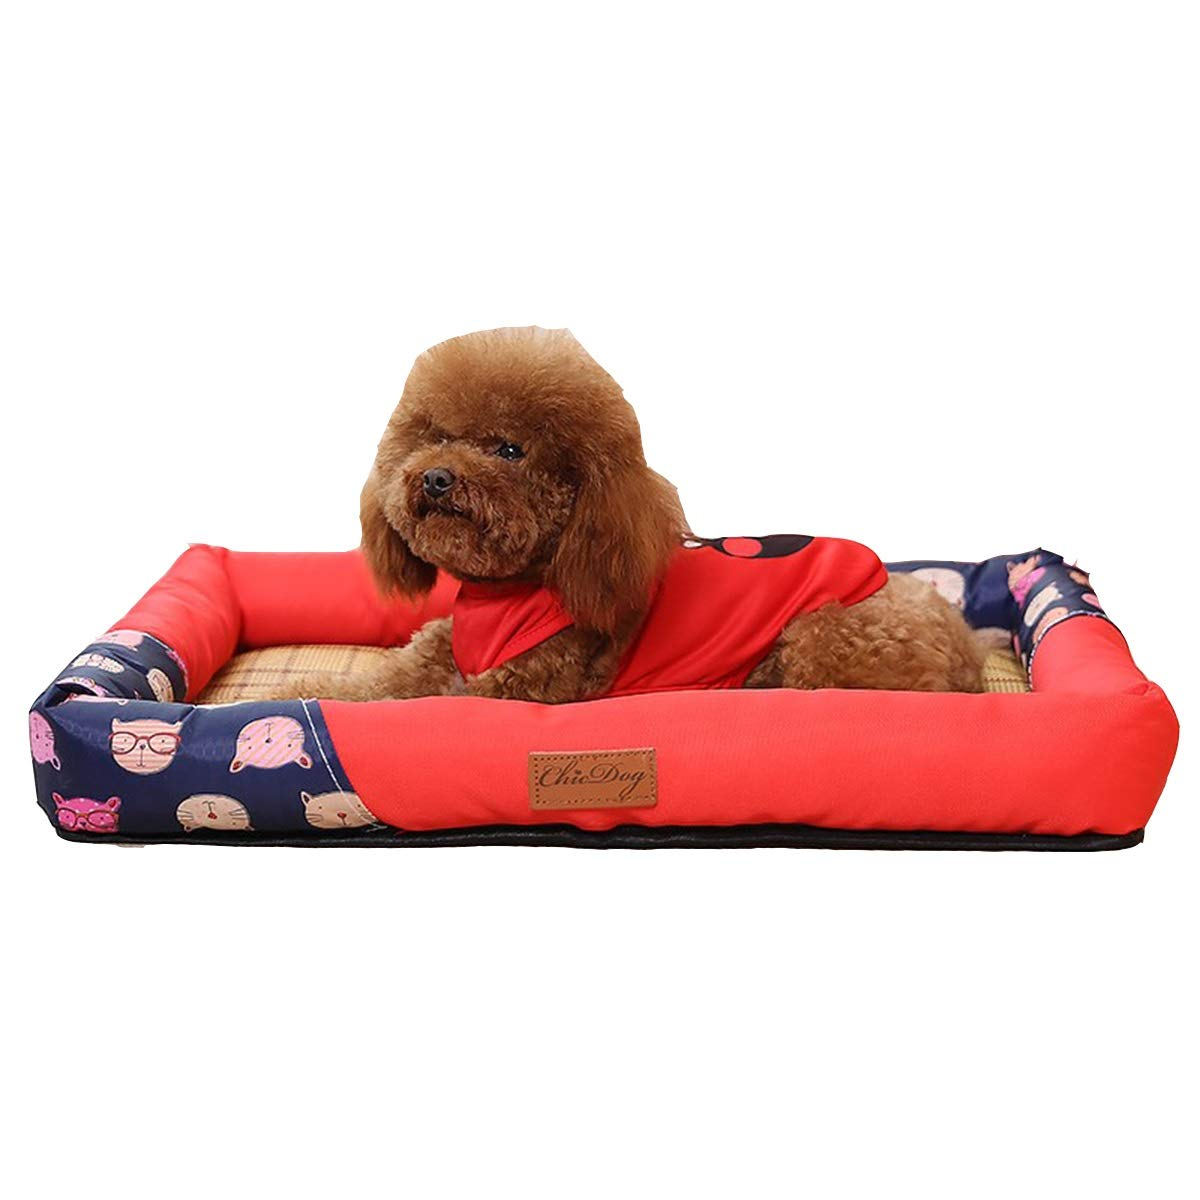 Red S Red S Kennel Summer Cool Nest, Small Dog Kennel, Summer Cool Mat Bed, Medium Dog, Dog Pet Cat Litter, Pink, Red 2 Optional (color   Red, Size   S)